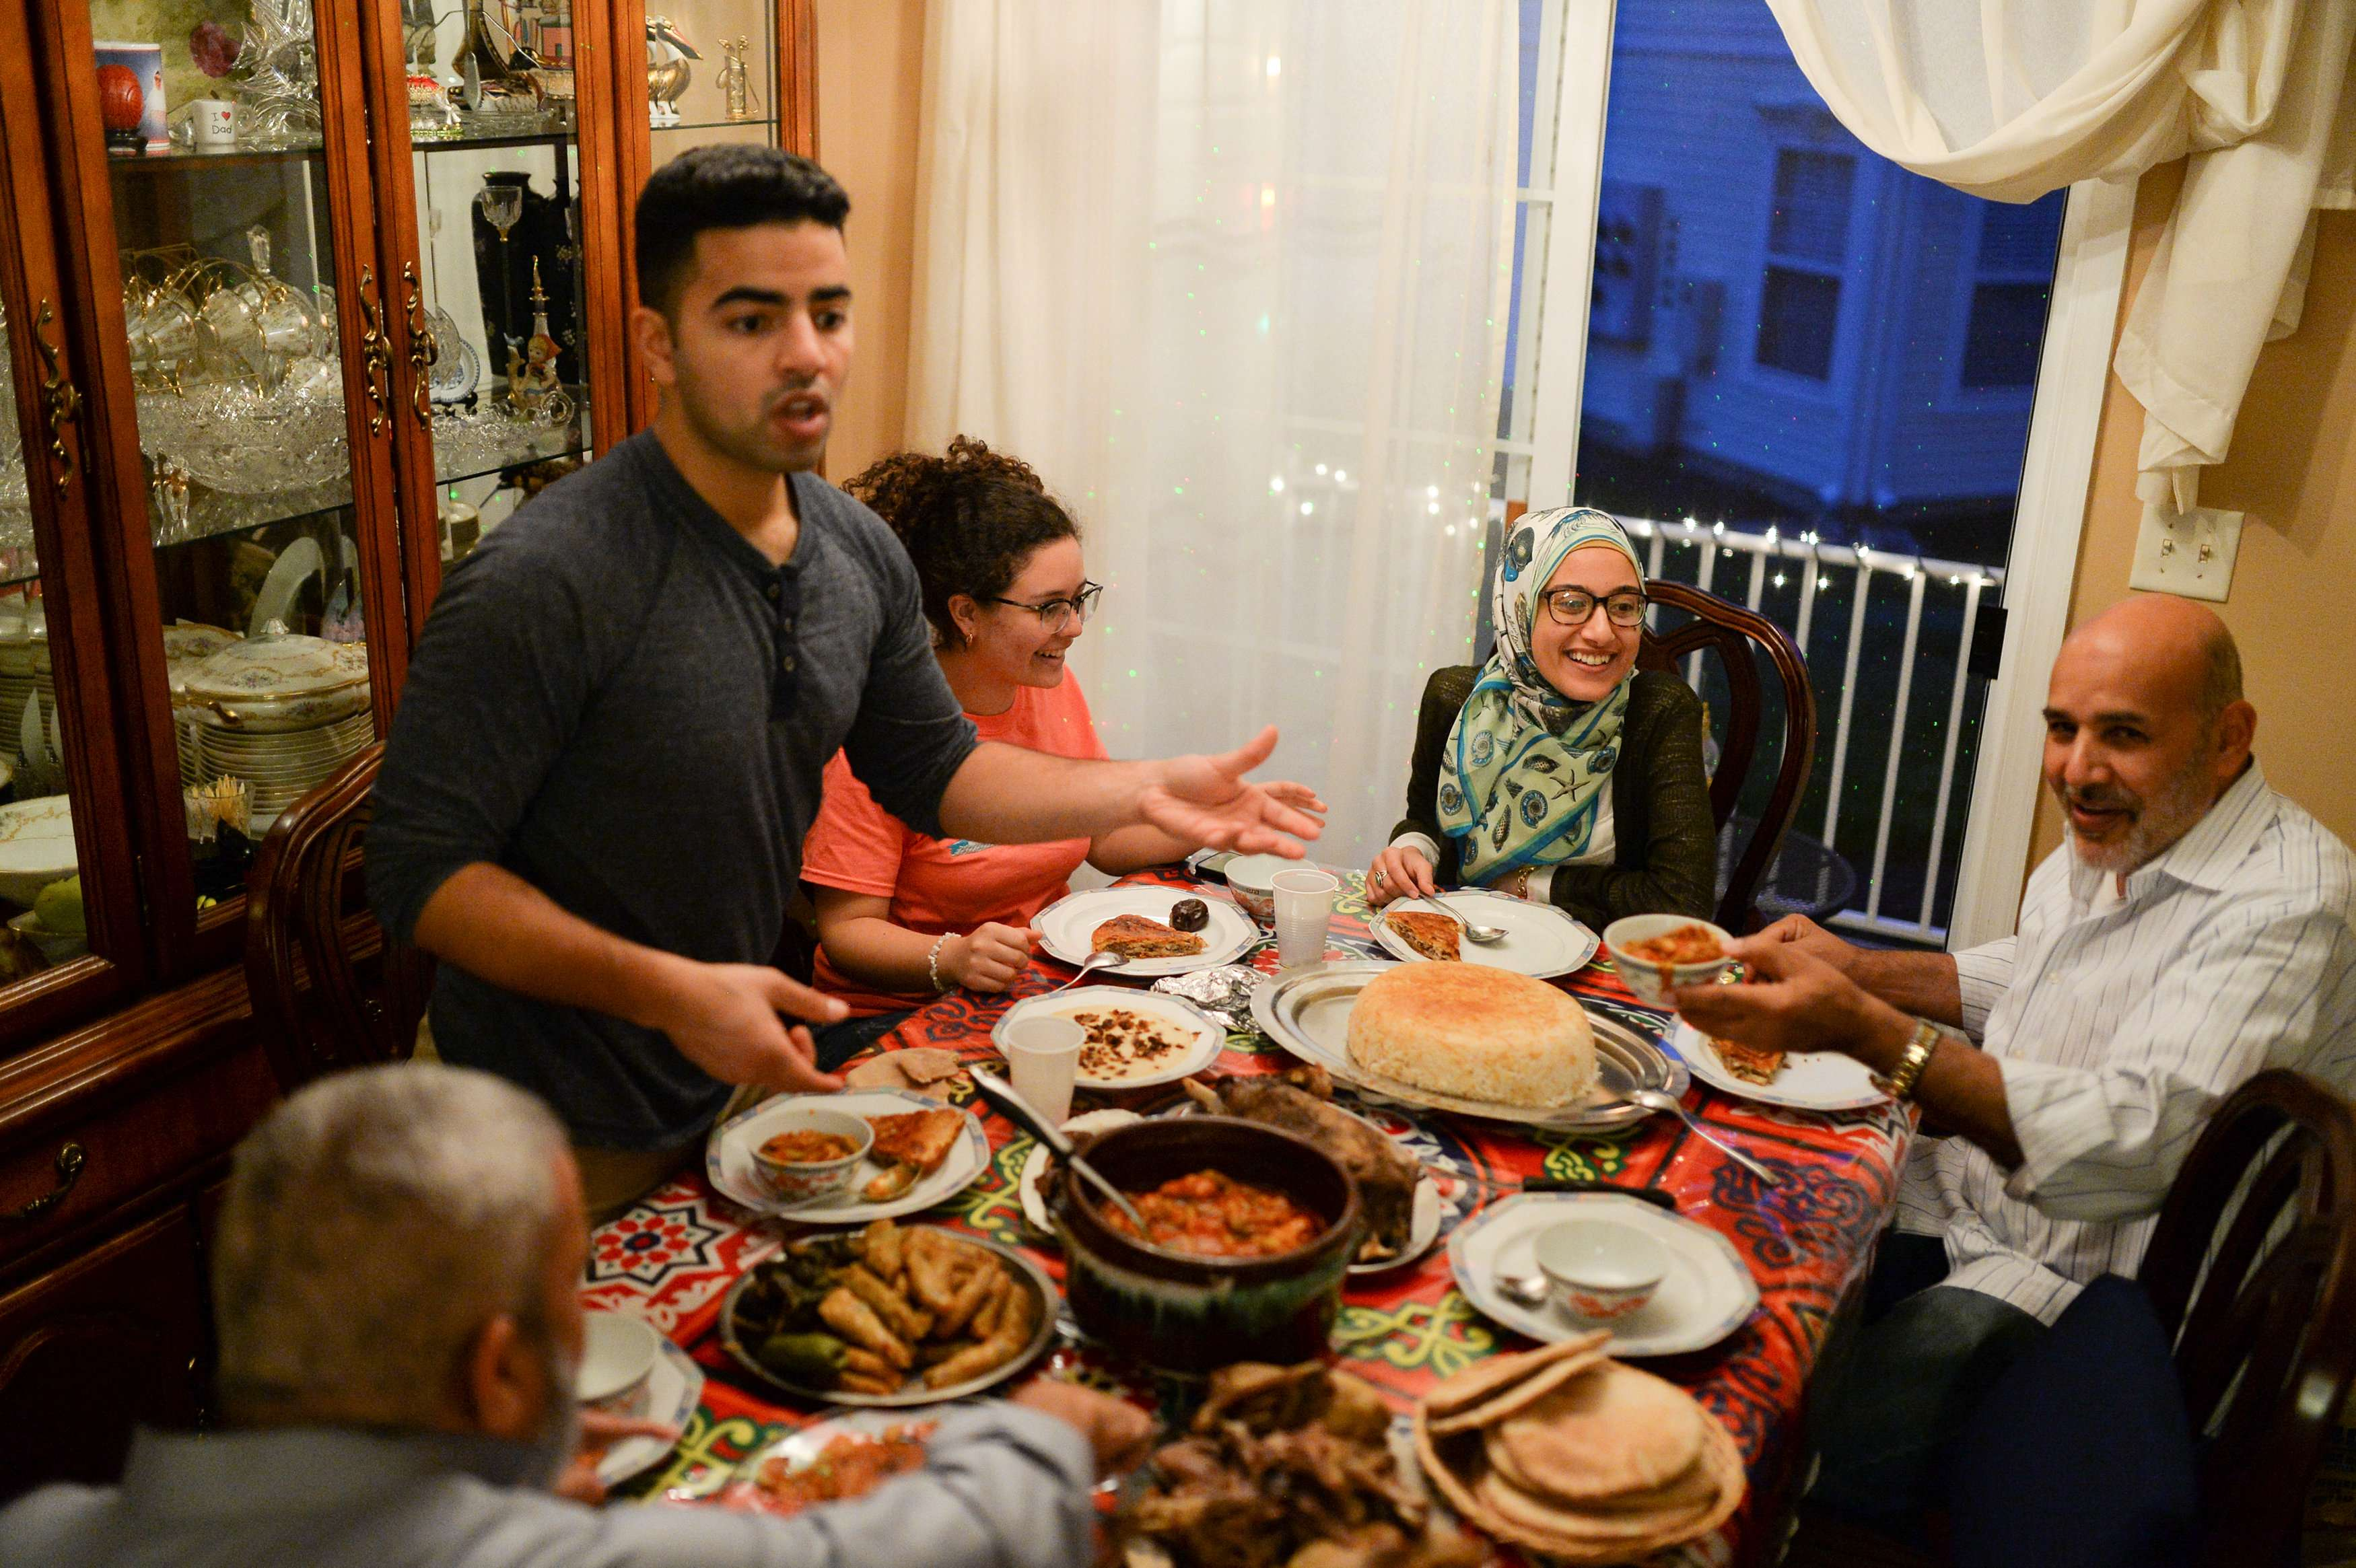 The Egyptian-American Muslim Elhariry family and their friends take part in an Iftar dinner during Ramadan in Manalapan in New Jersey, last May.  (Reuters)